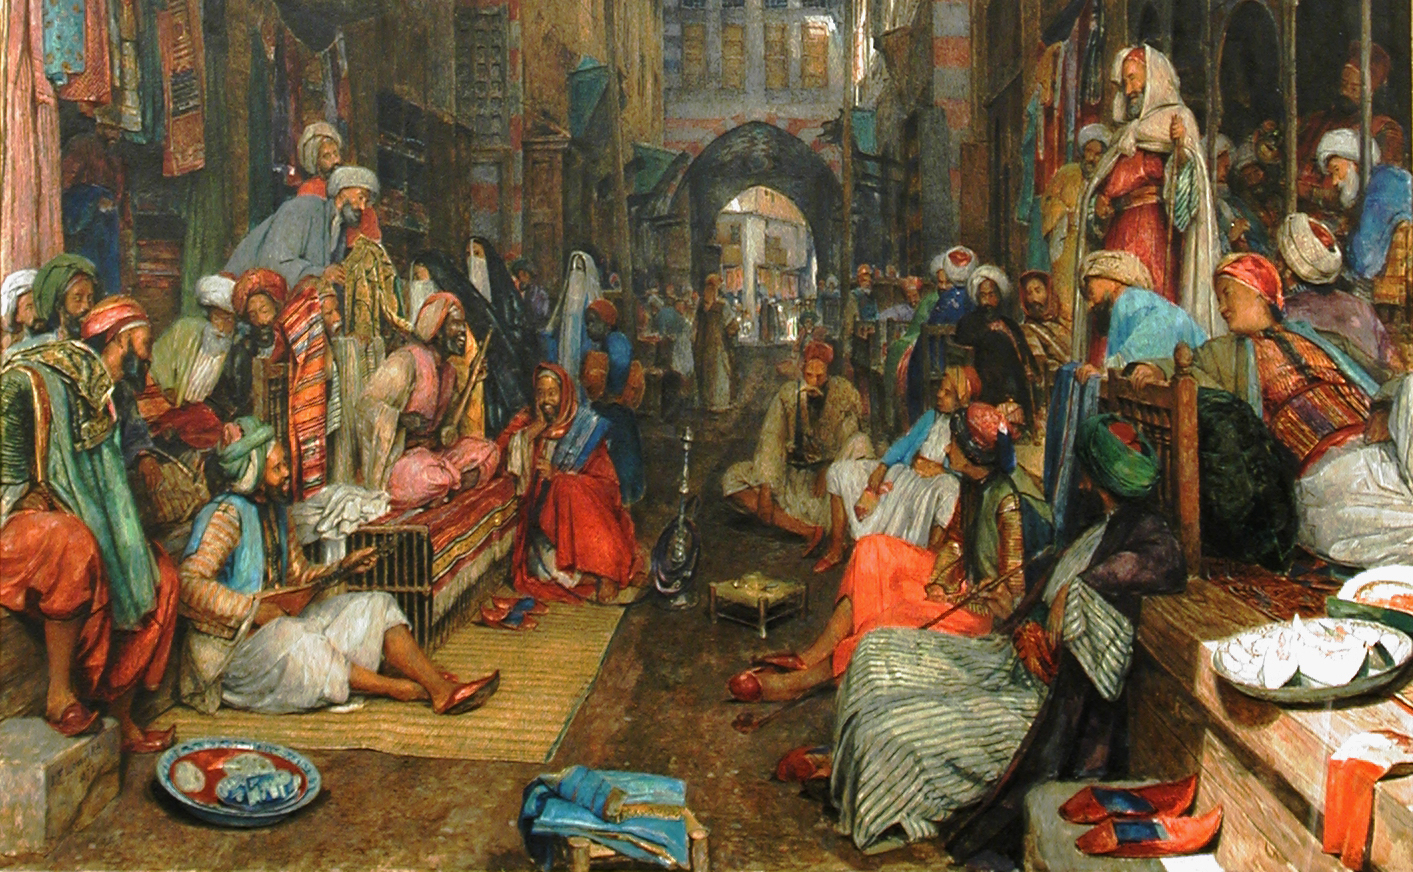 The Bezestein Bazaar, El Khan Khalil, Cairo, 1872, by John Frederick Lewis. Watercolour. The Higgins Art Gallery & Museum, Bedford